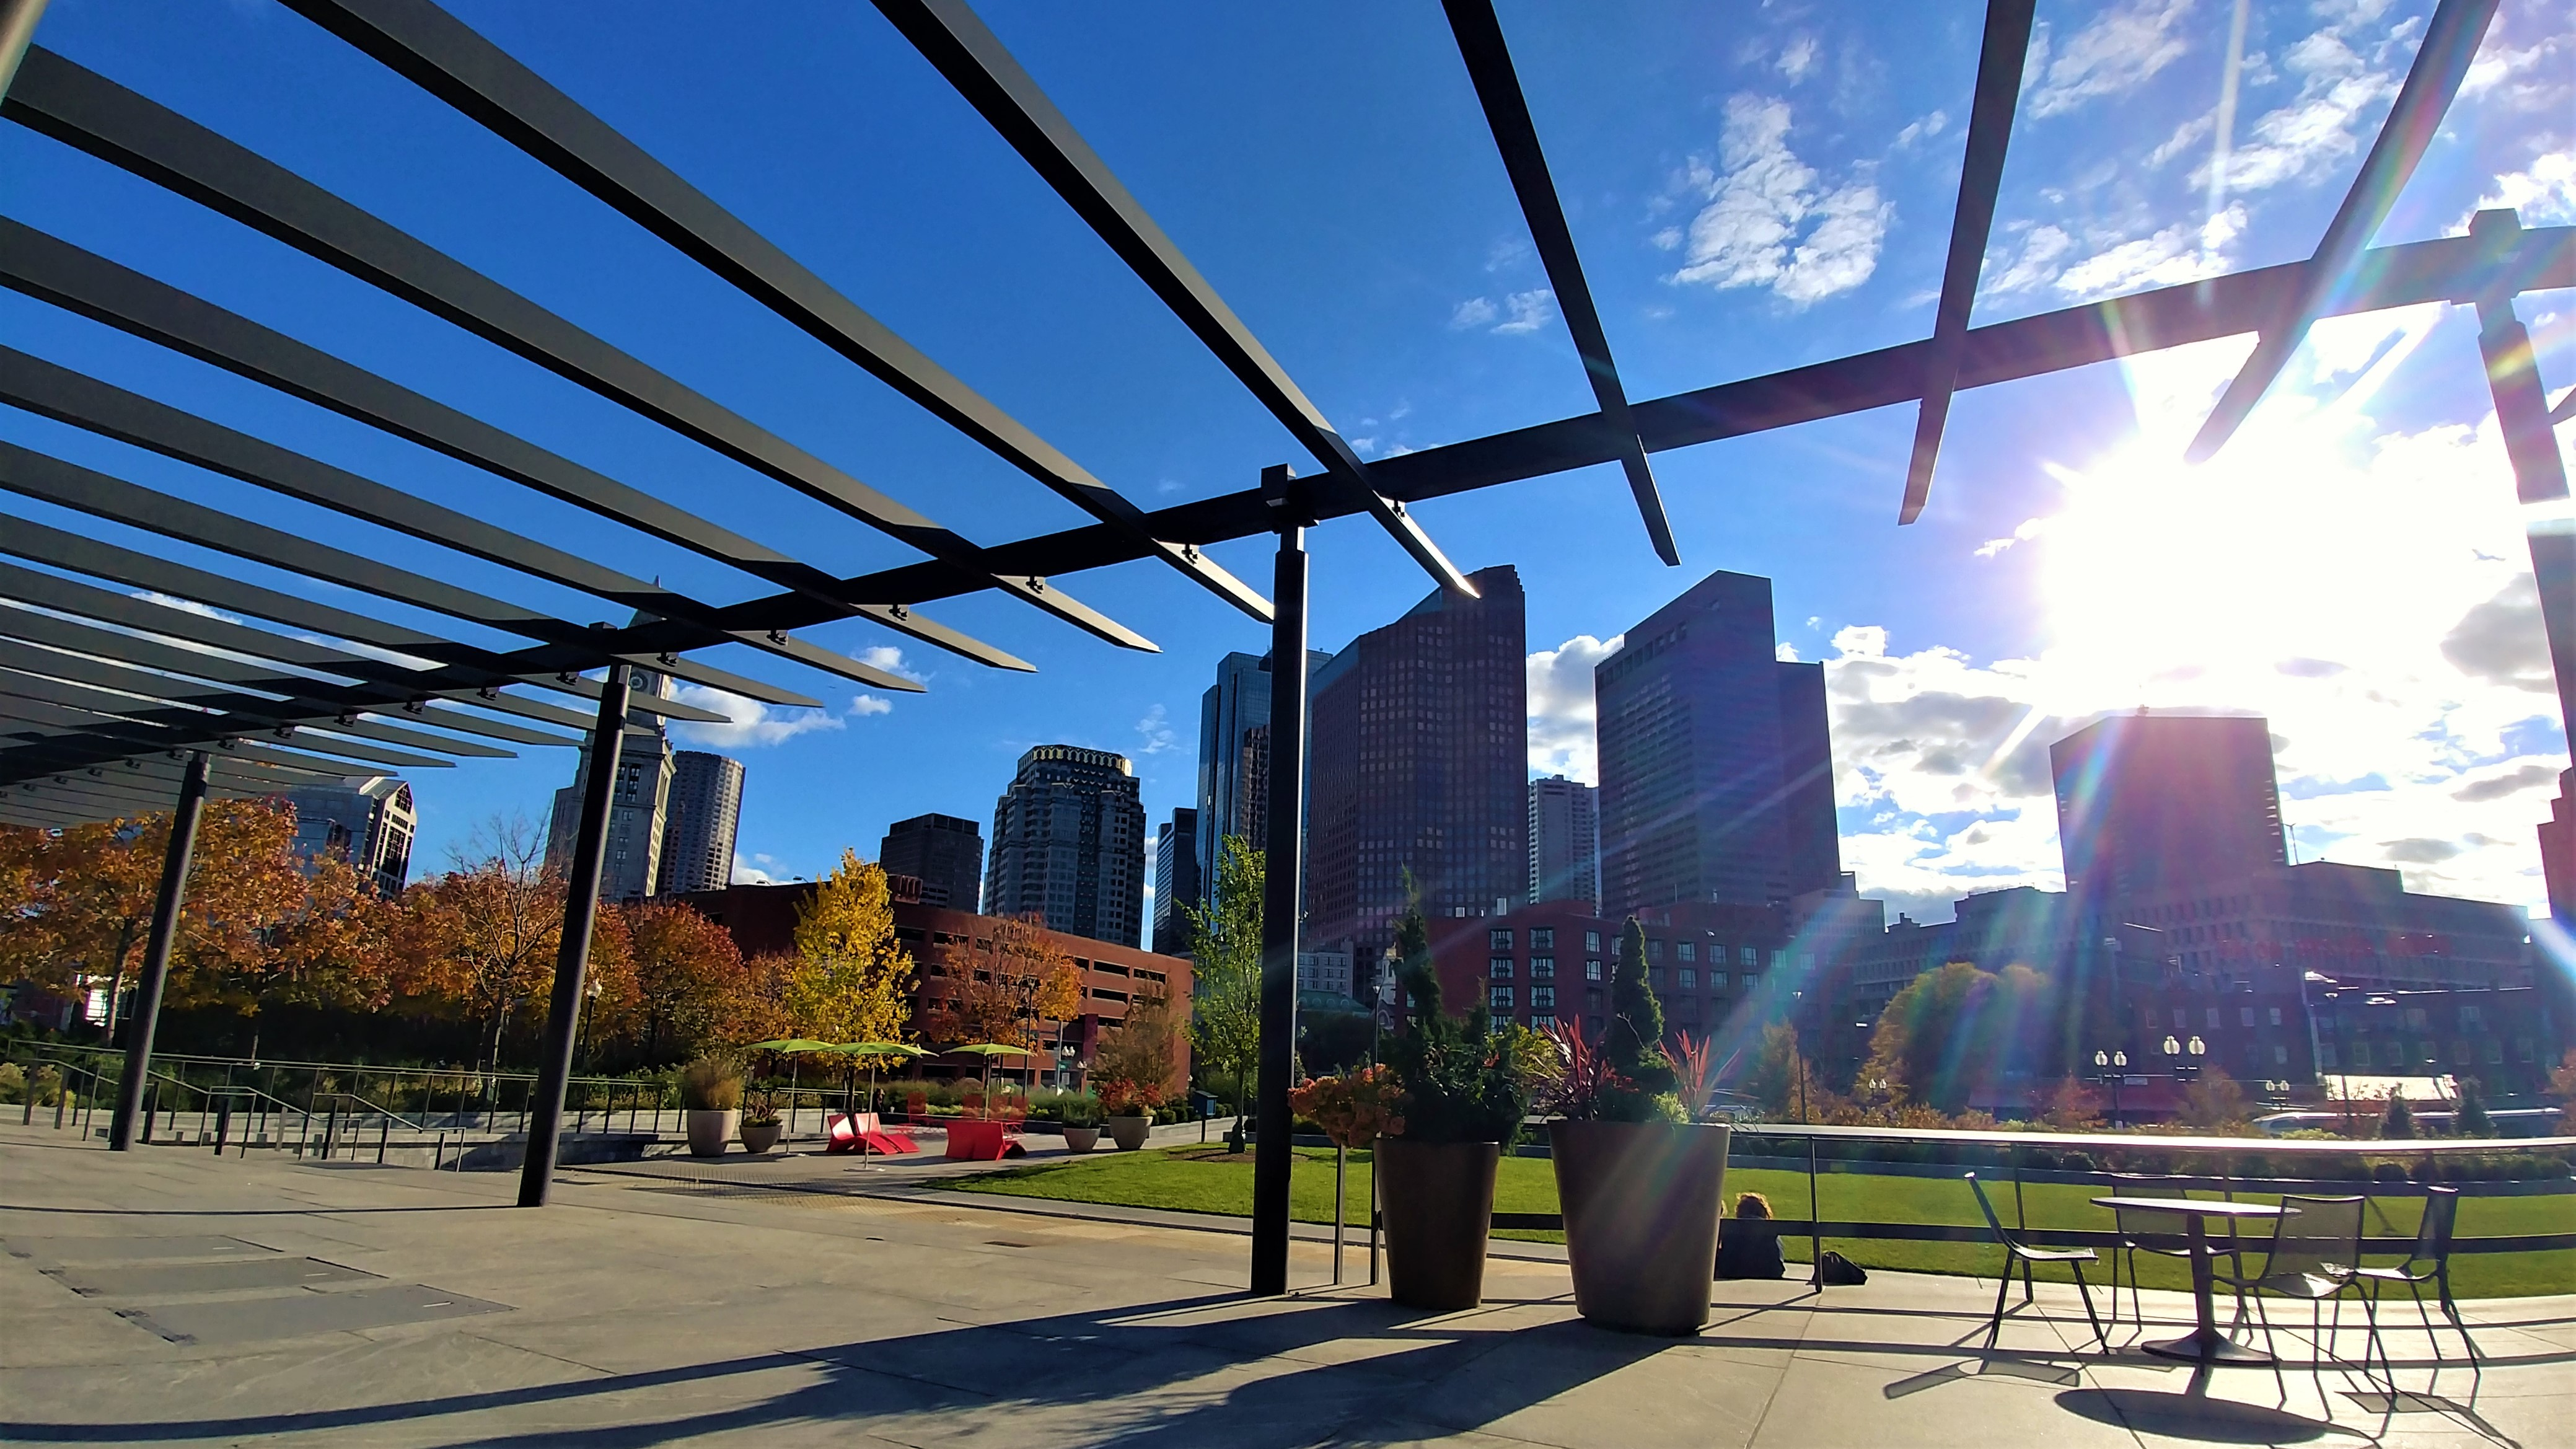 boston automne usa road-trip blog voyage